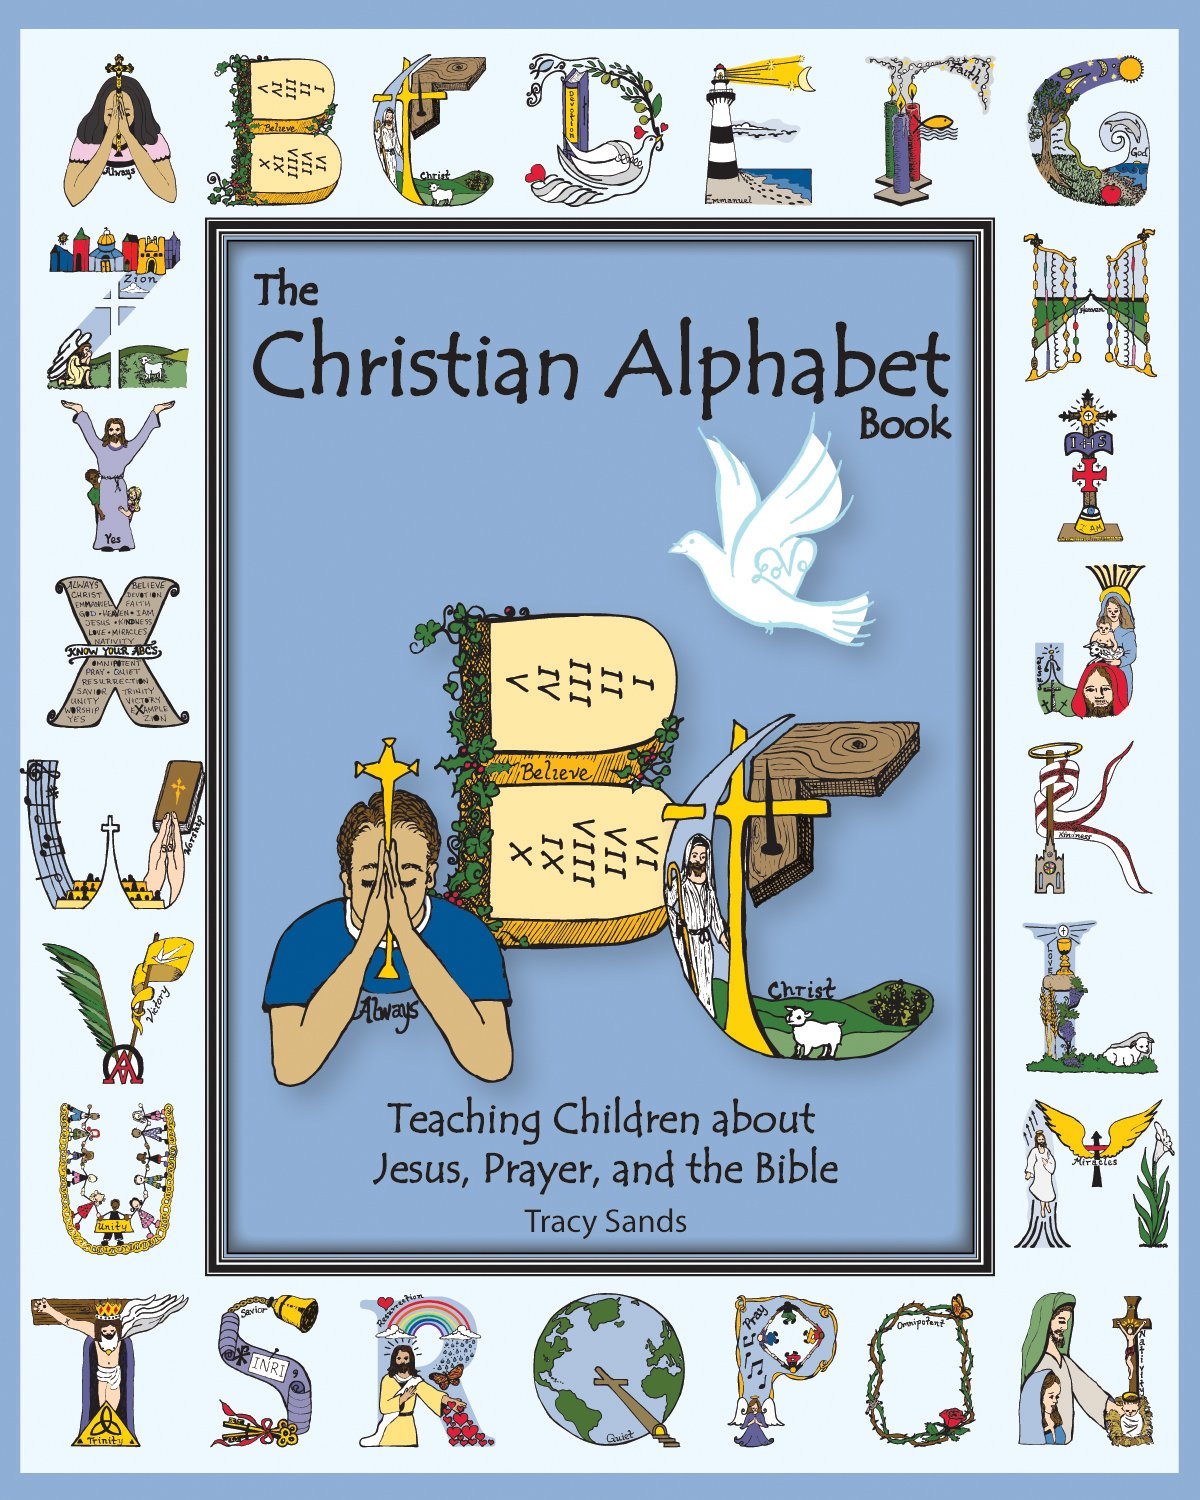 The Christian Alphabet Book